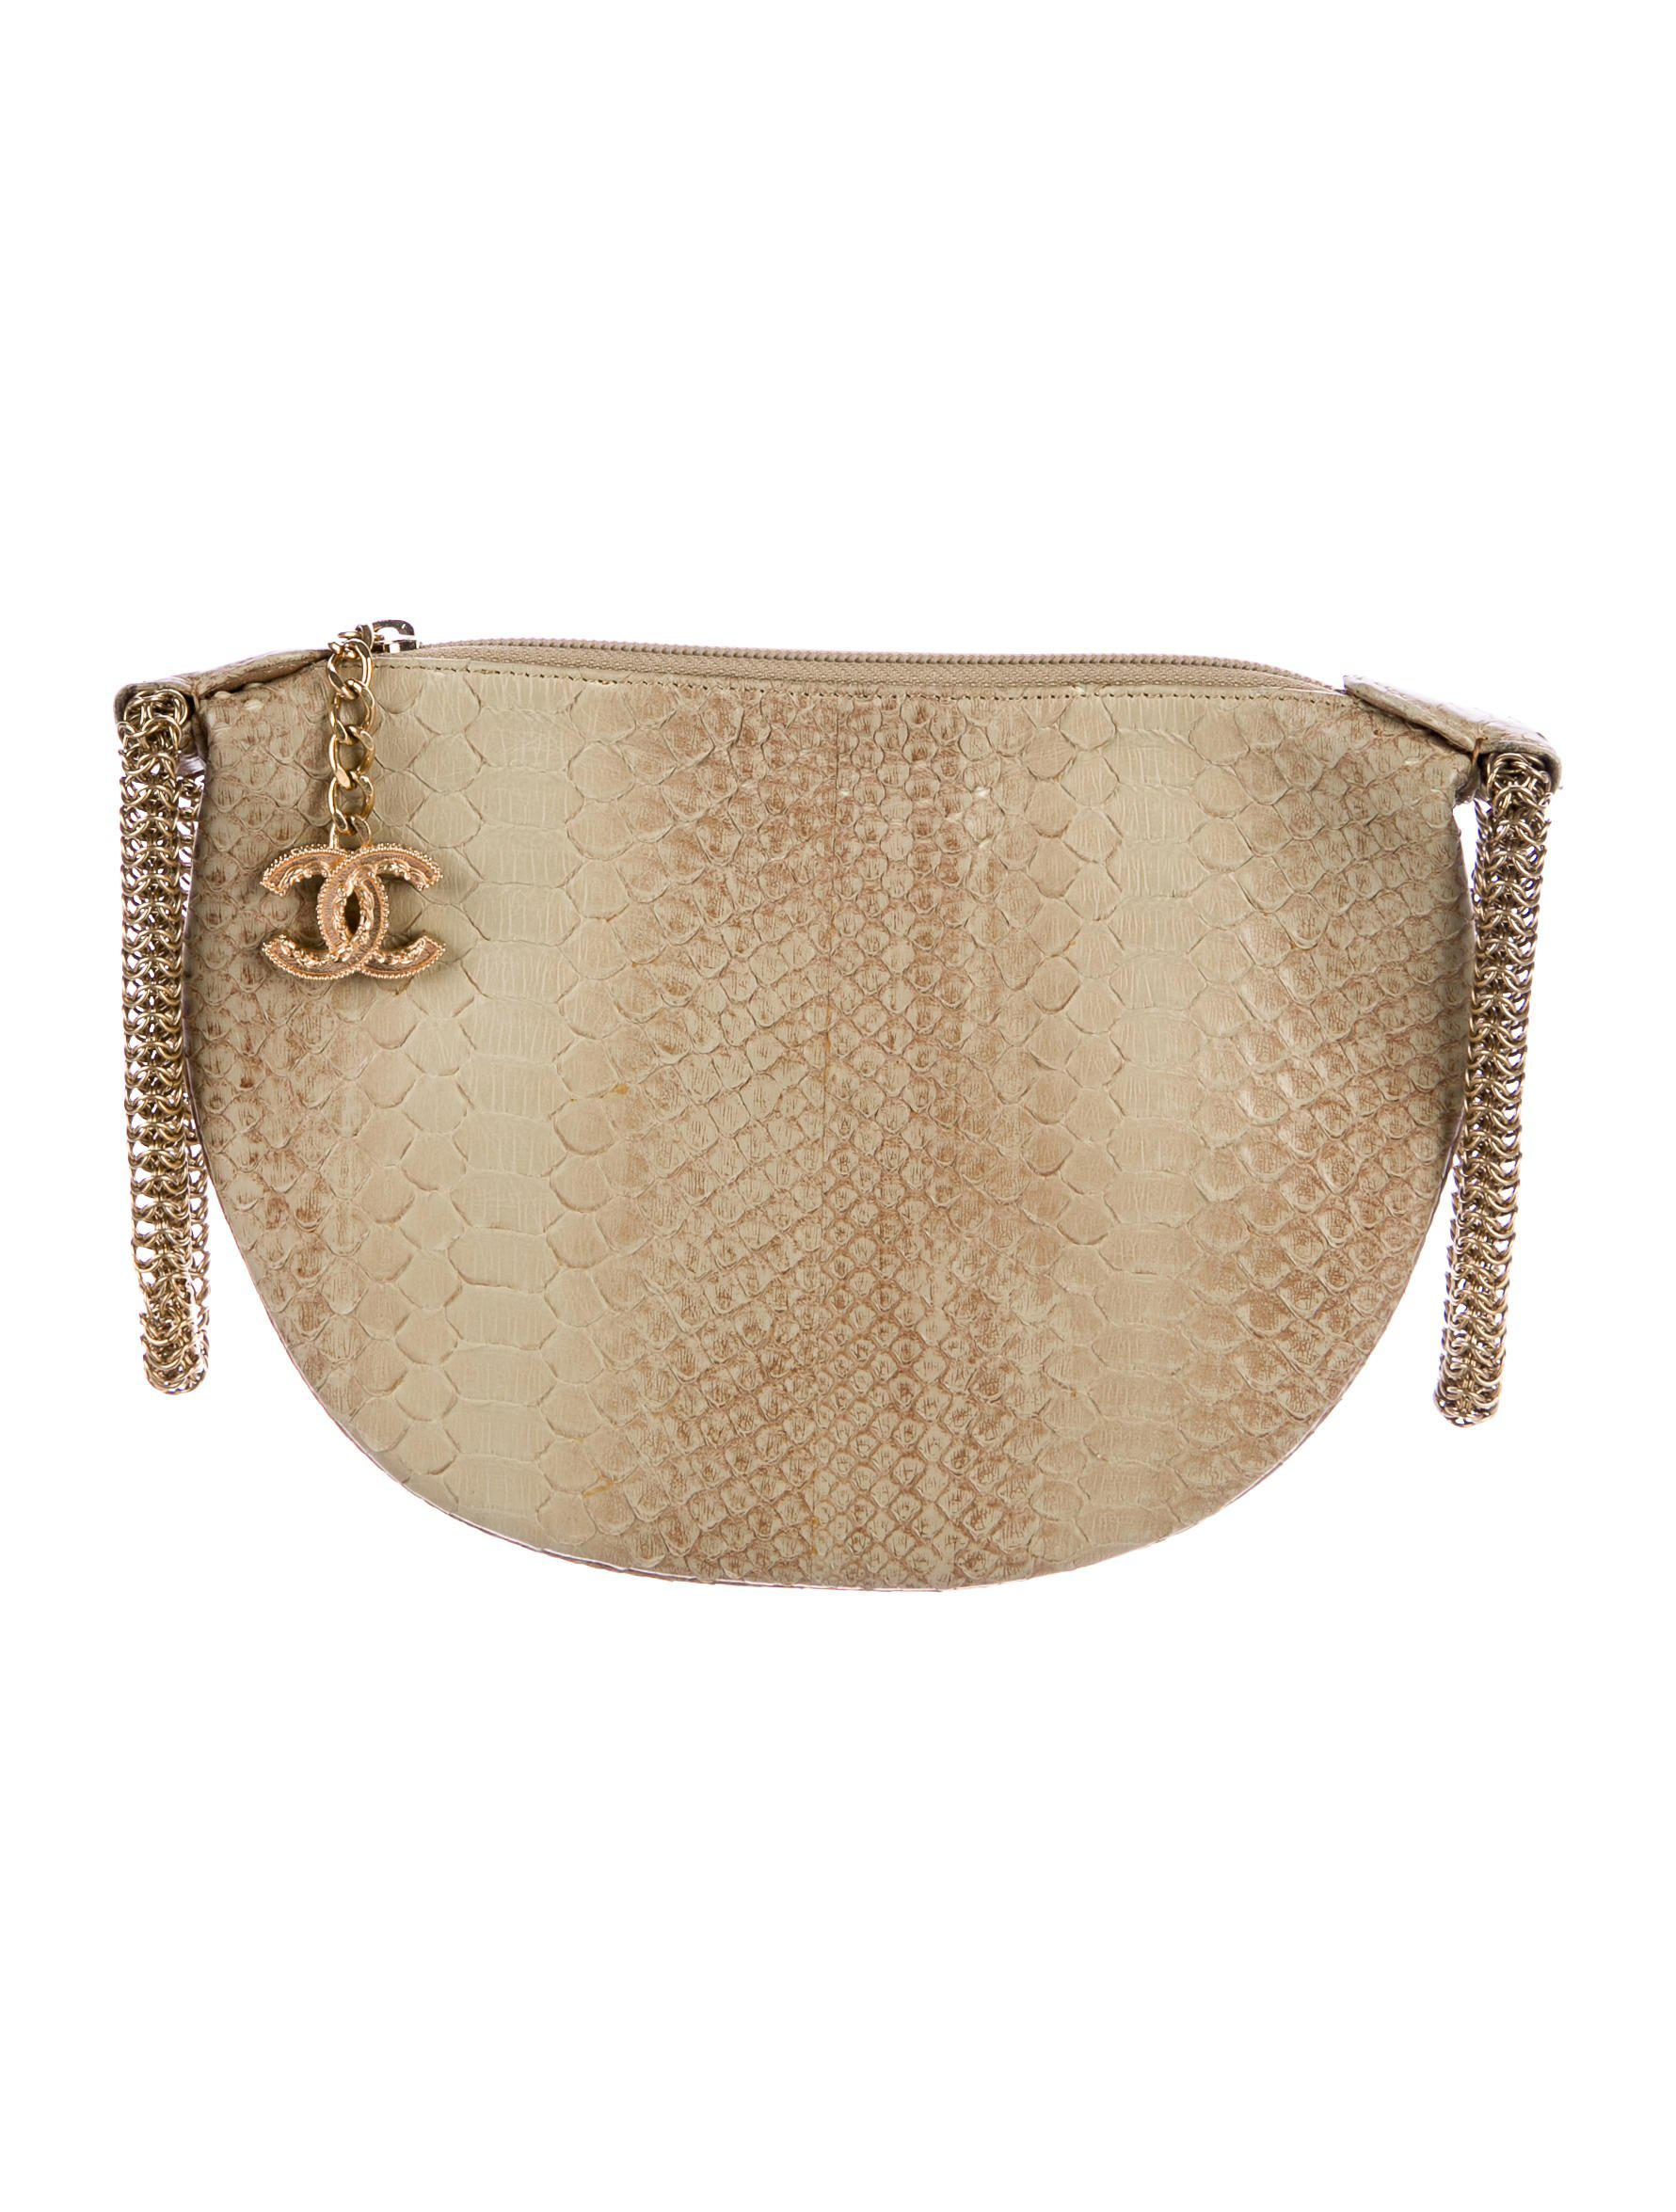 Lyst - Chanel Python Evening Bag Brown in Metallic a78a93fa47079